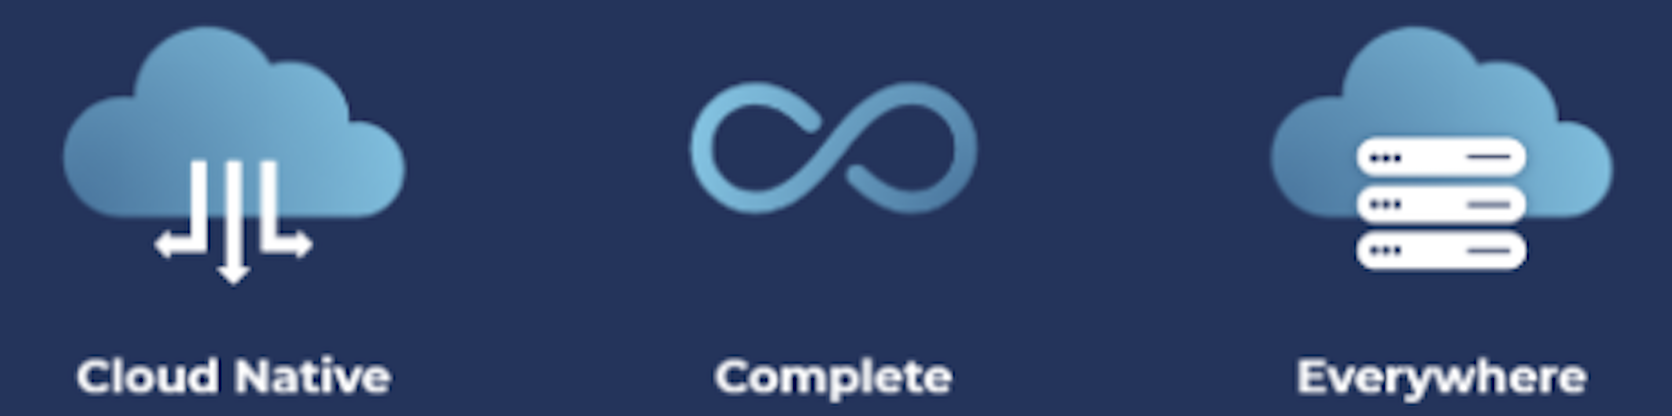 Cloud native, complete, everywhere